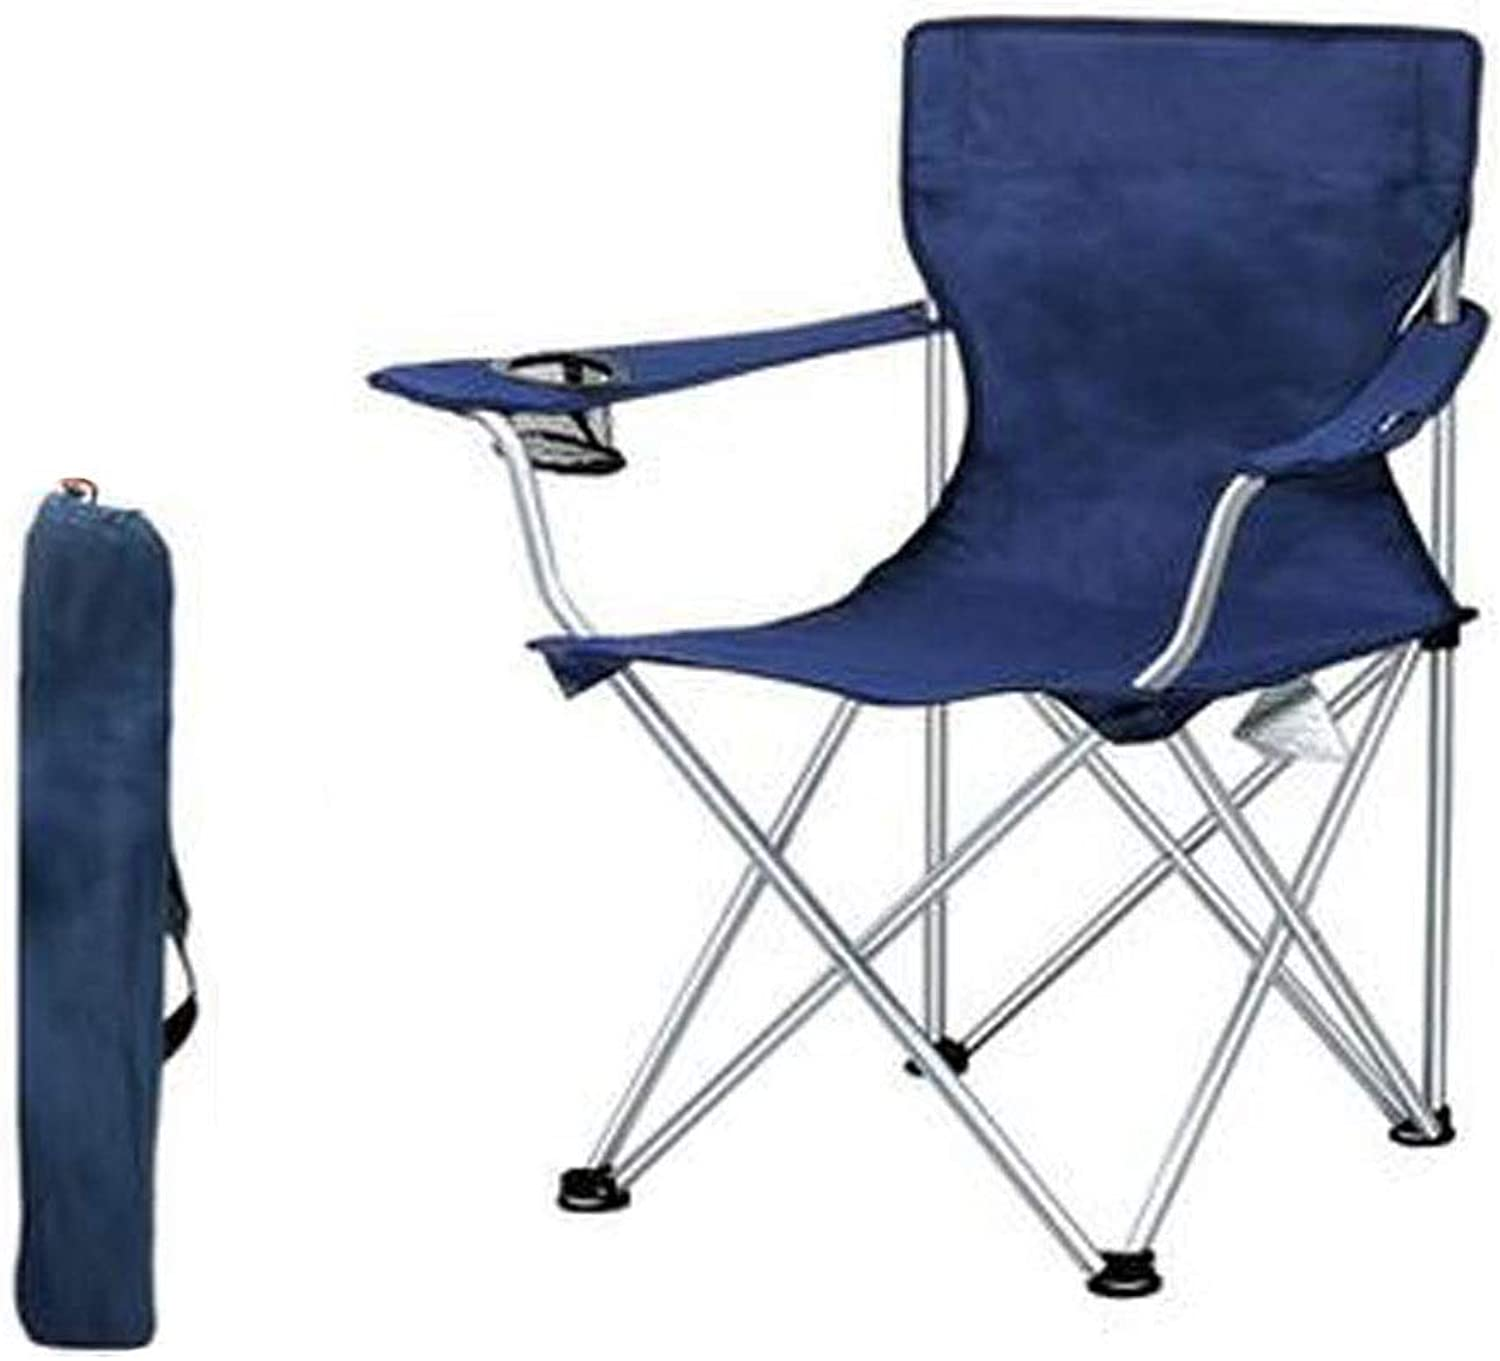 Folding Chair, Camping Chair Folding Portable Four-Corner Mesh with Cup Holder Pocket and Hard Armrest, Support 100KG, bluee Concise